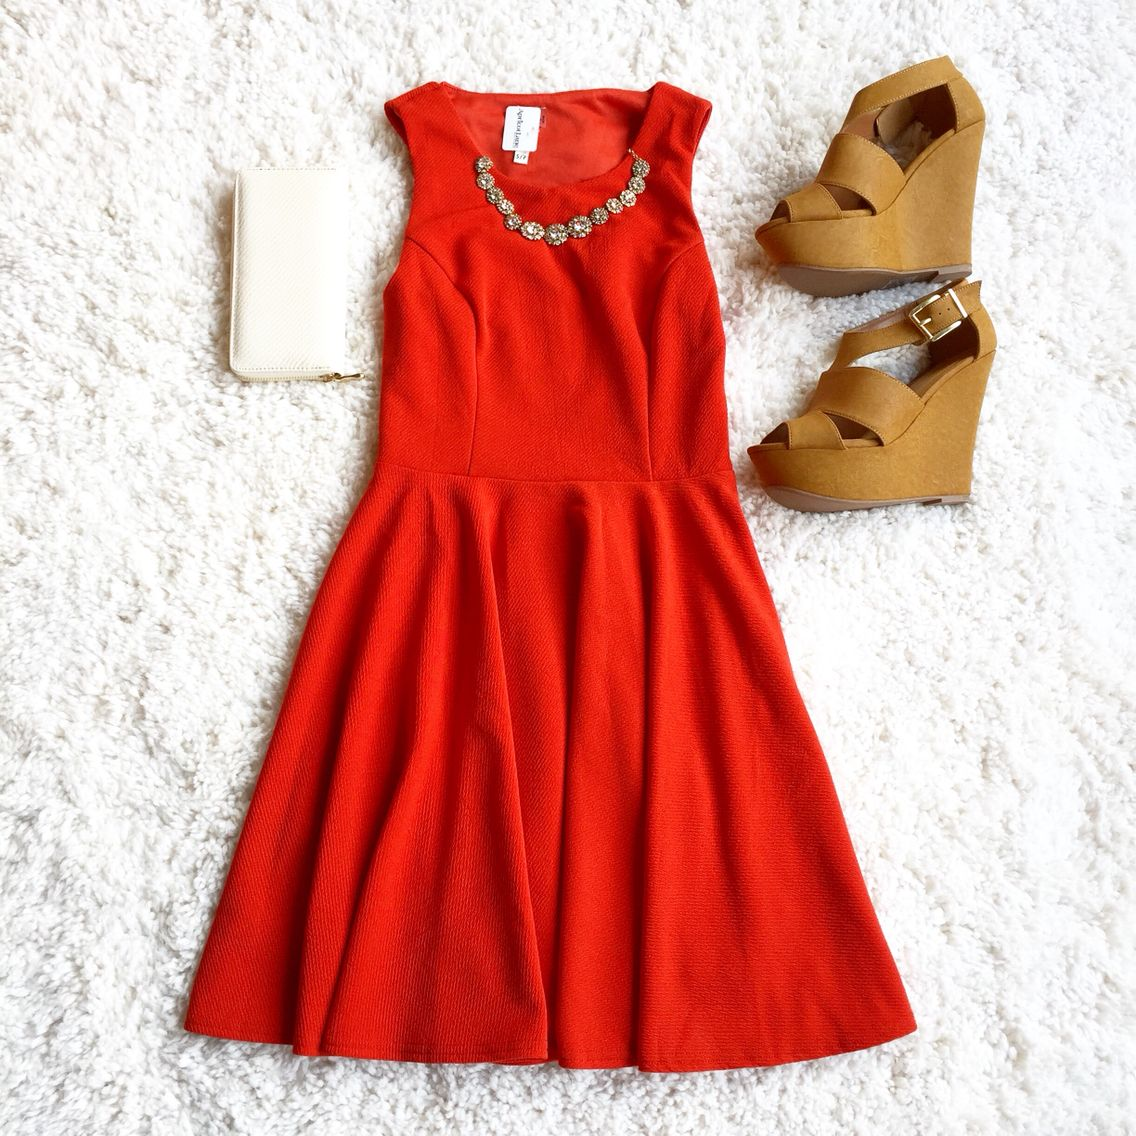 We want you to look great for your date!!  #DateNight #Dress #WonderfulWeekend